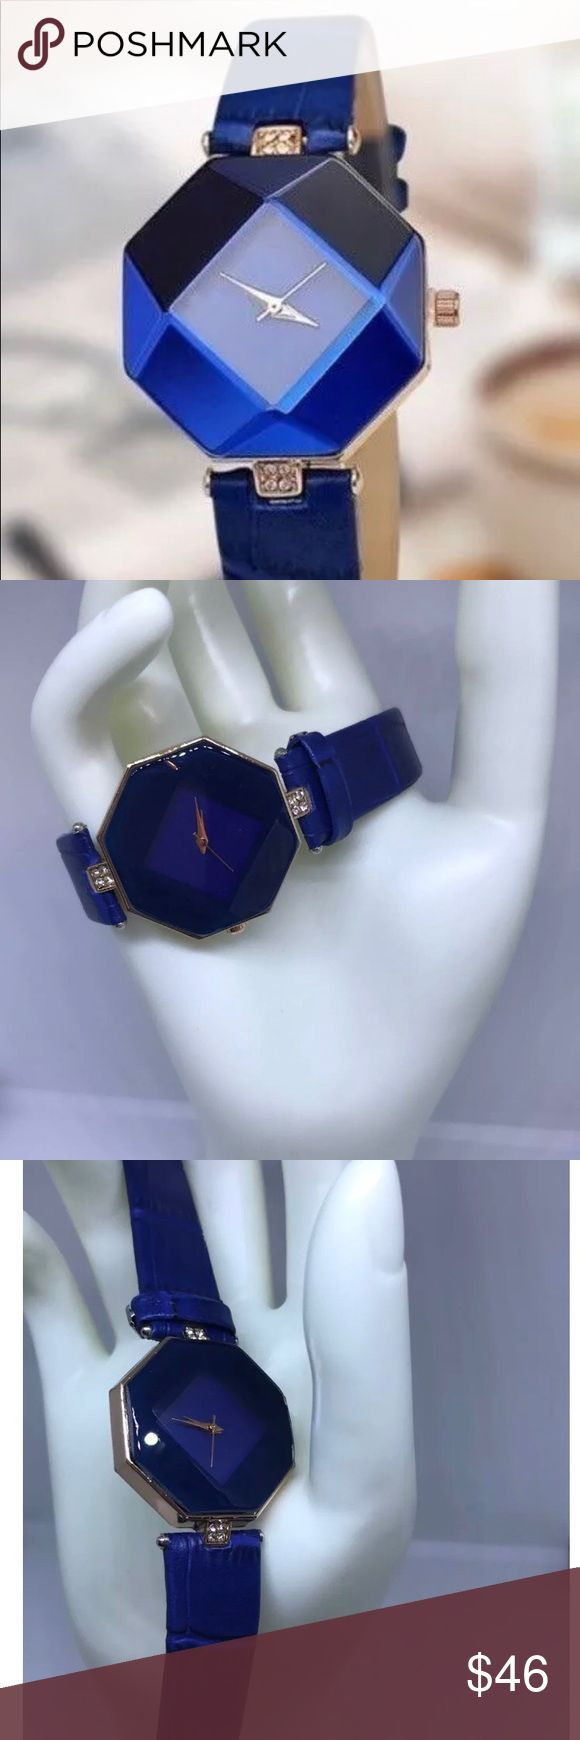 Blue Geneva Octagon Leather Watch Blue Geneva Octagon Leather Watch 2017 Fashionable Women's Rhinestones NEW   This Stylish Blue Geneva Octagon Leather Watch 2017 Fashionable Women's Rhinestones NEW will be a hit at any gathering.  For Dressy or Formal occasions this beautiful watch is a hit with the ladies.  Fashionable Blue Leather Band Octagon shaped face Analog Quartz Battery 2017 Fashion Geneva Solid Stainless Steel Back Cover Water Resistant Small Rhinestones Pretty Gift Box included…